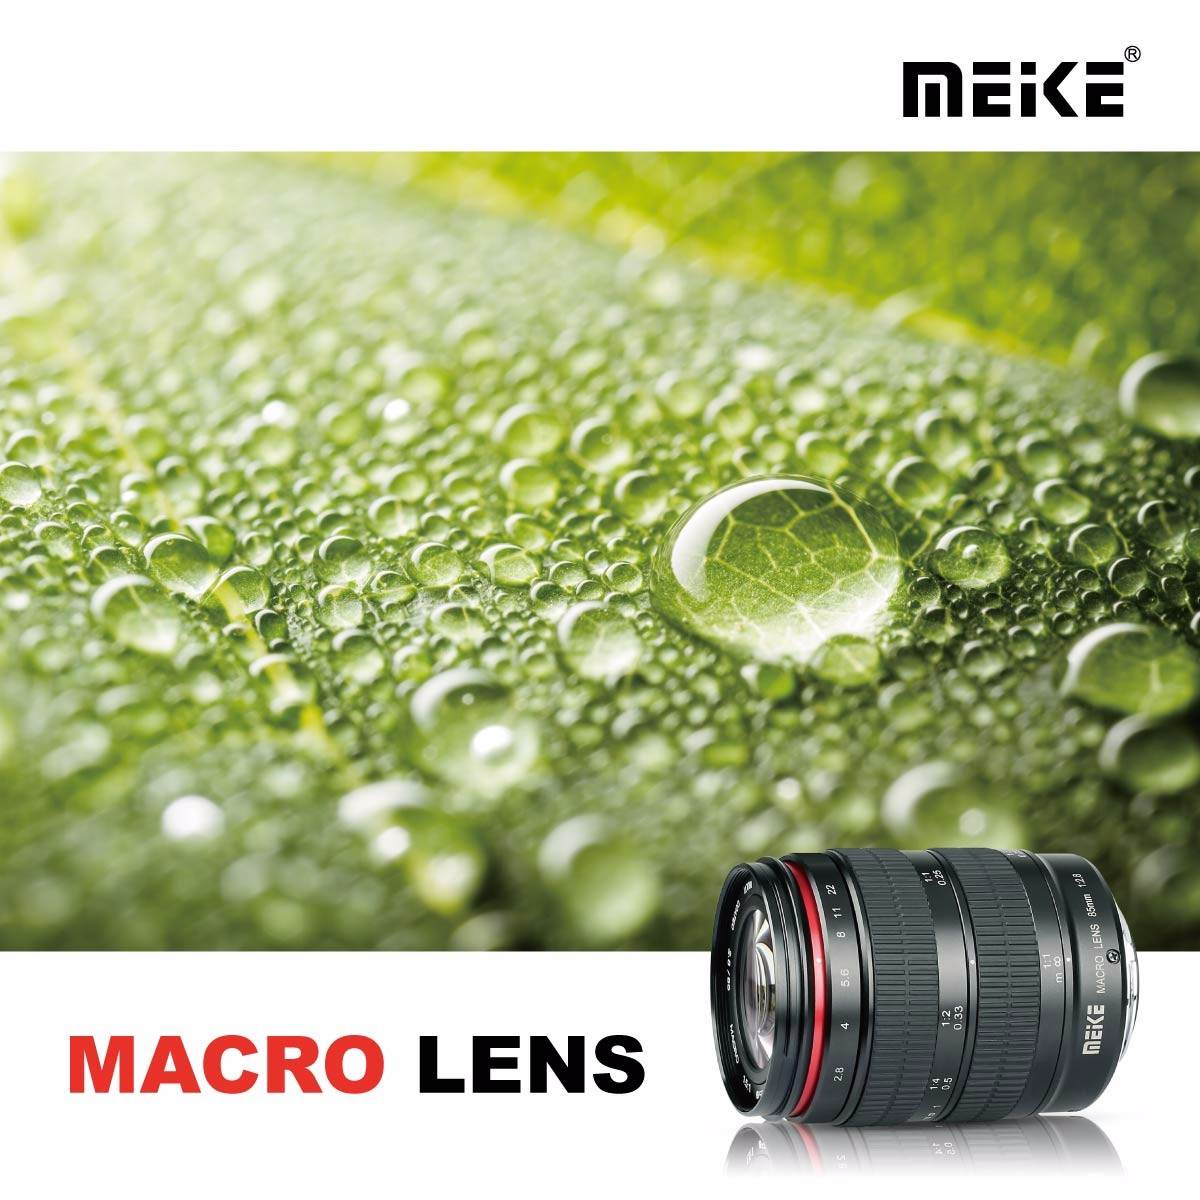 Meike Announced A New 85mm F 28 Macro Manual Focus Full Frame Lens 50mm F2 For Mft Micro Four Third Mirrorless Canon Nikon Dslr Sony Fuji Panasonic Cameras Here Are The Specifications